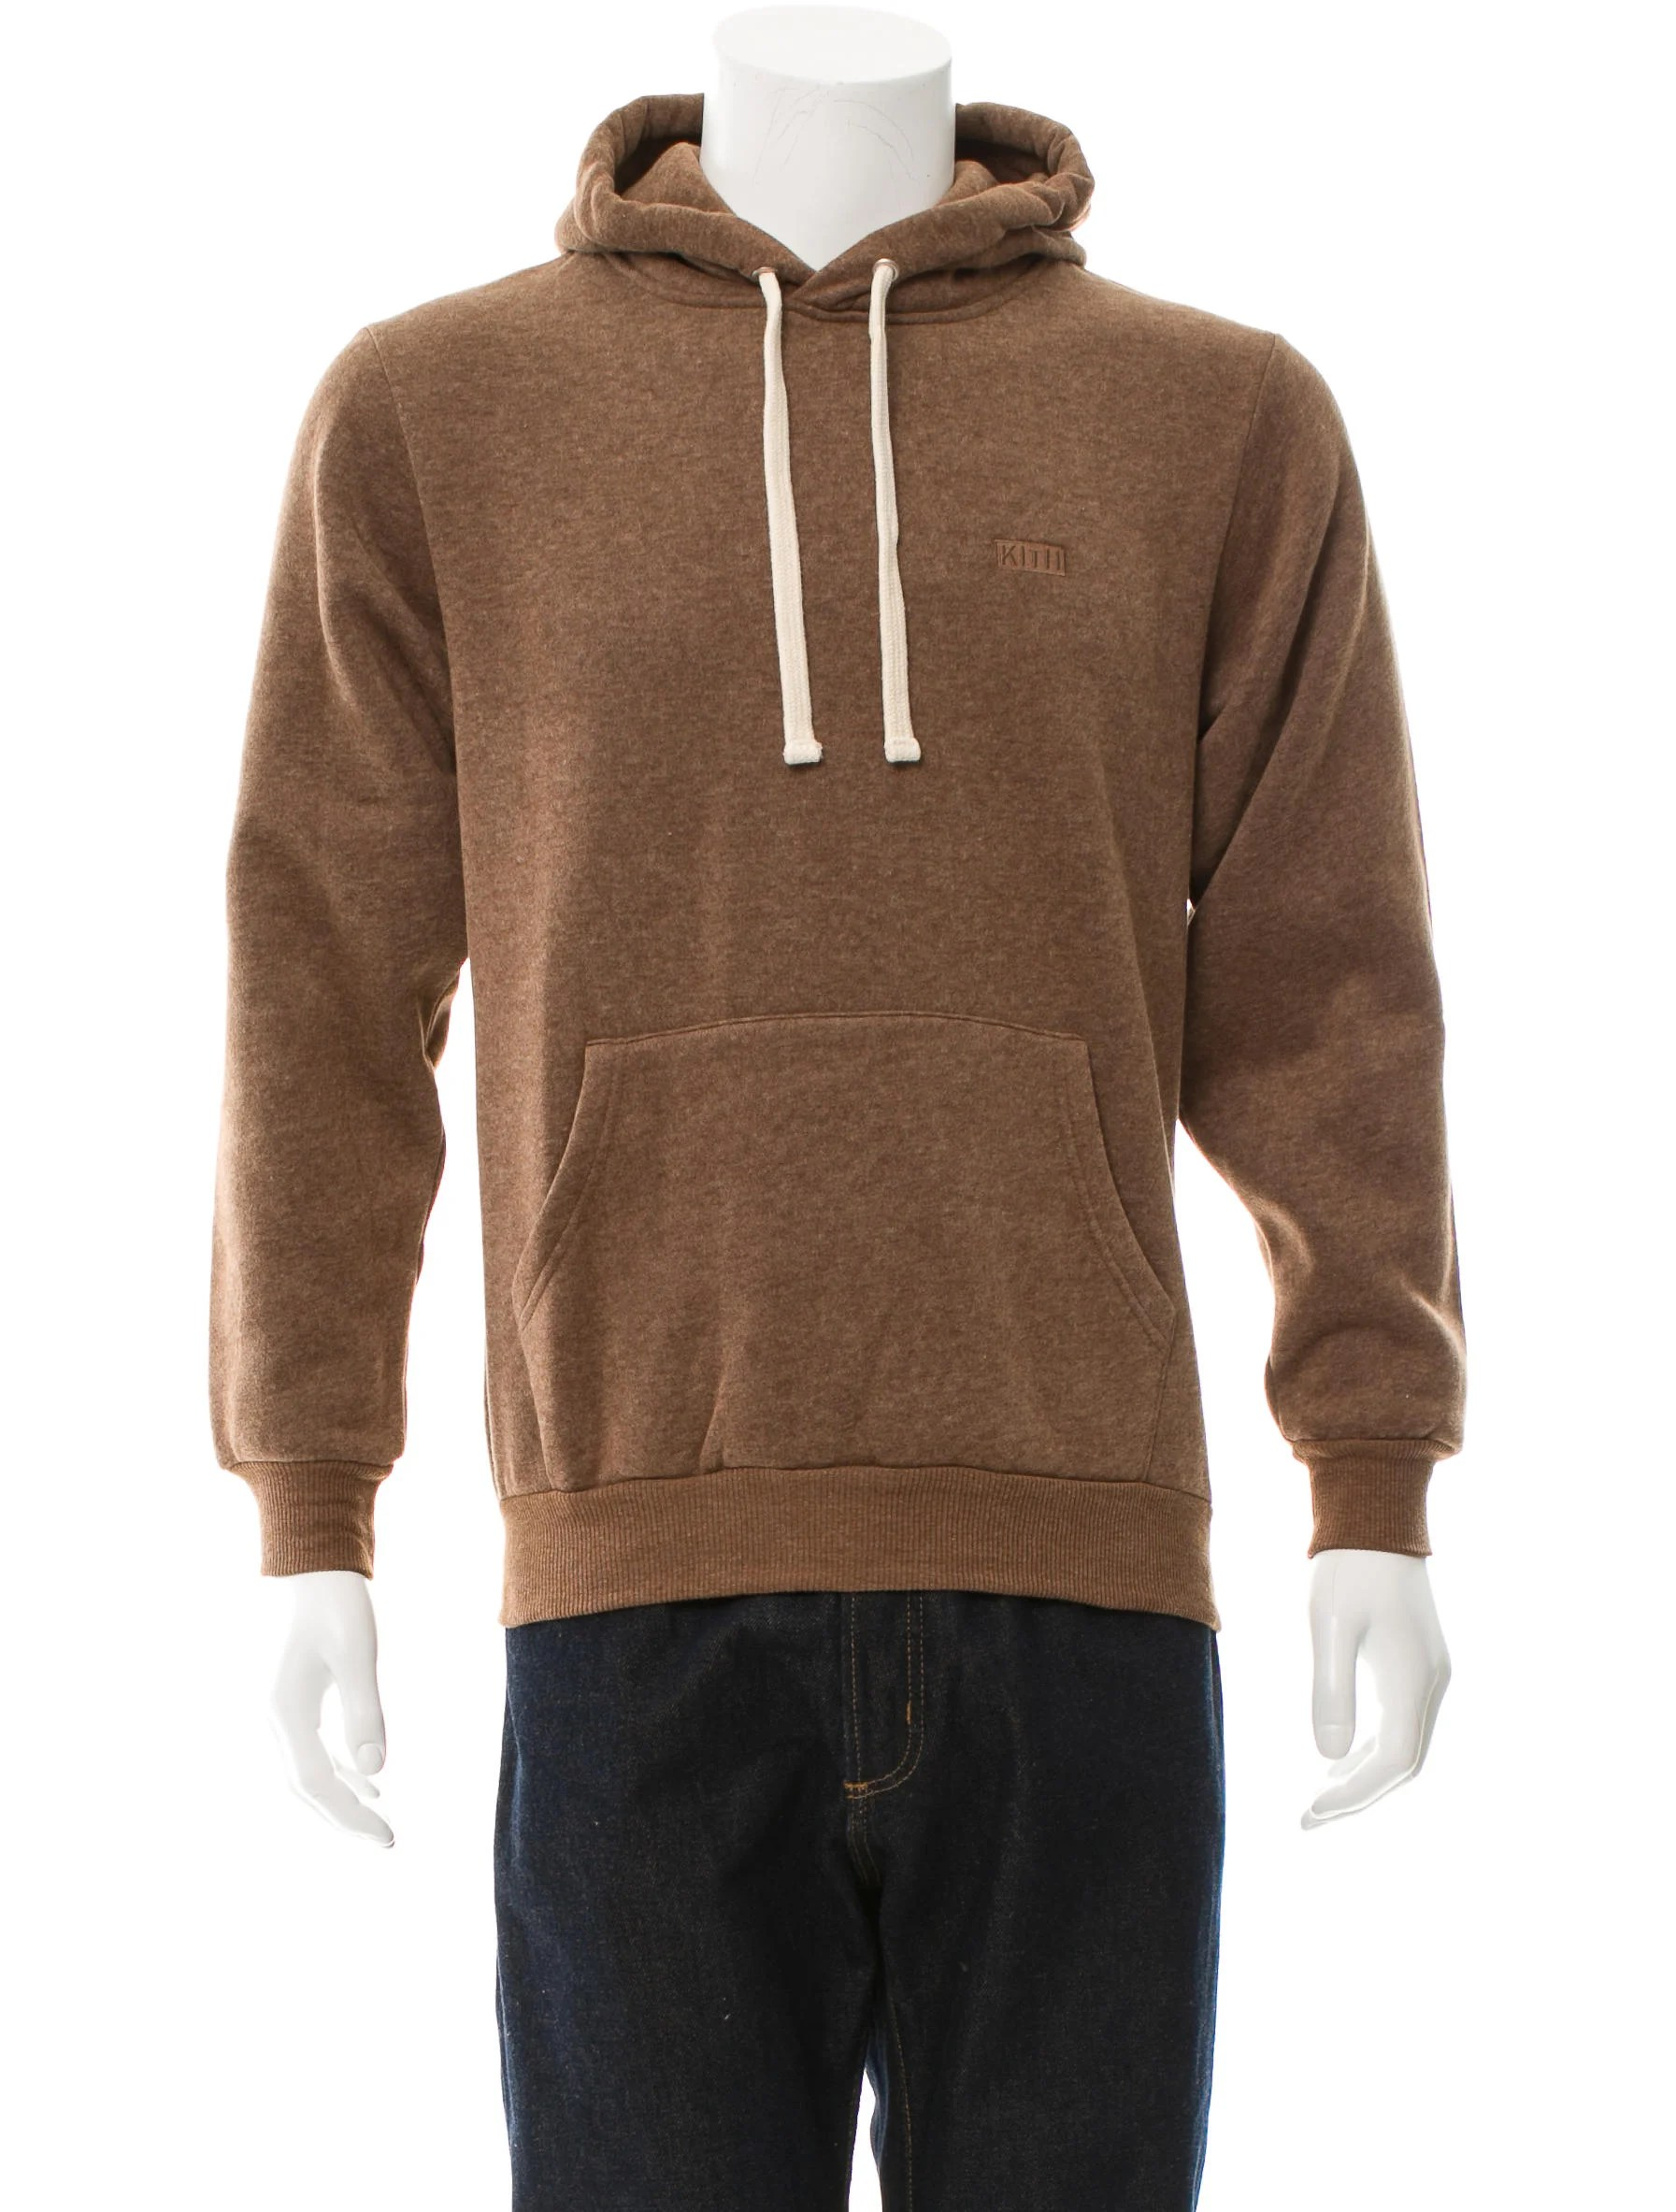 100 cotton sofas gold sofa table kith pullover drawstring hoodie w/ tags - clothing ...